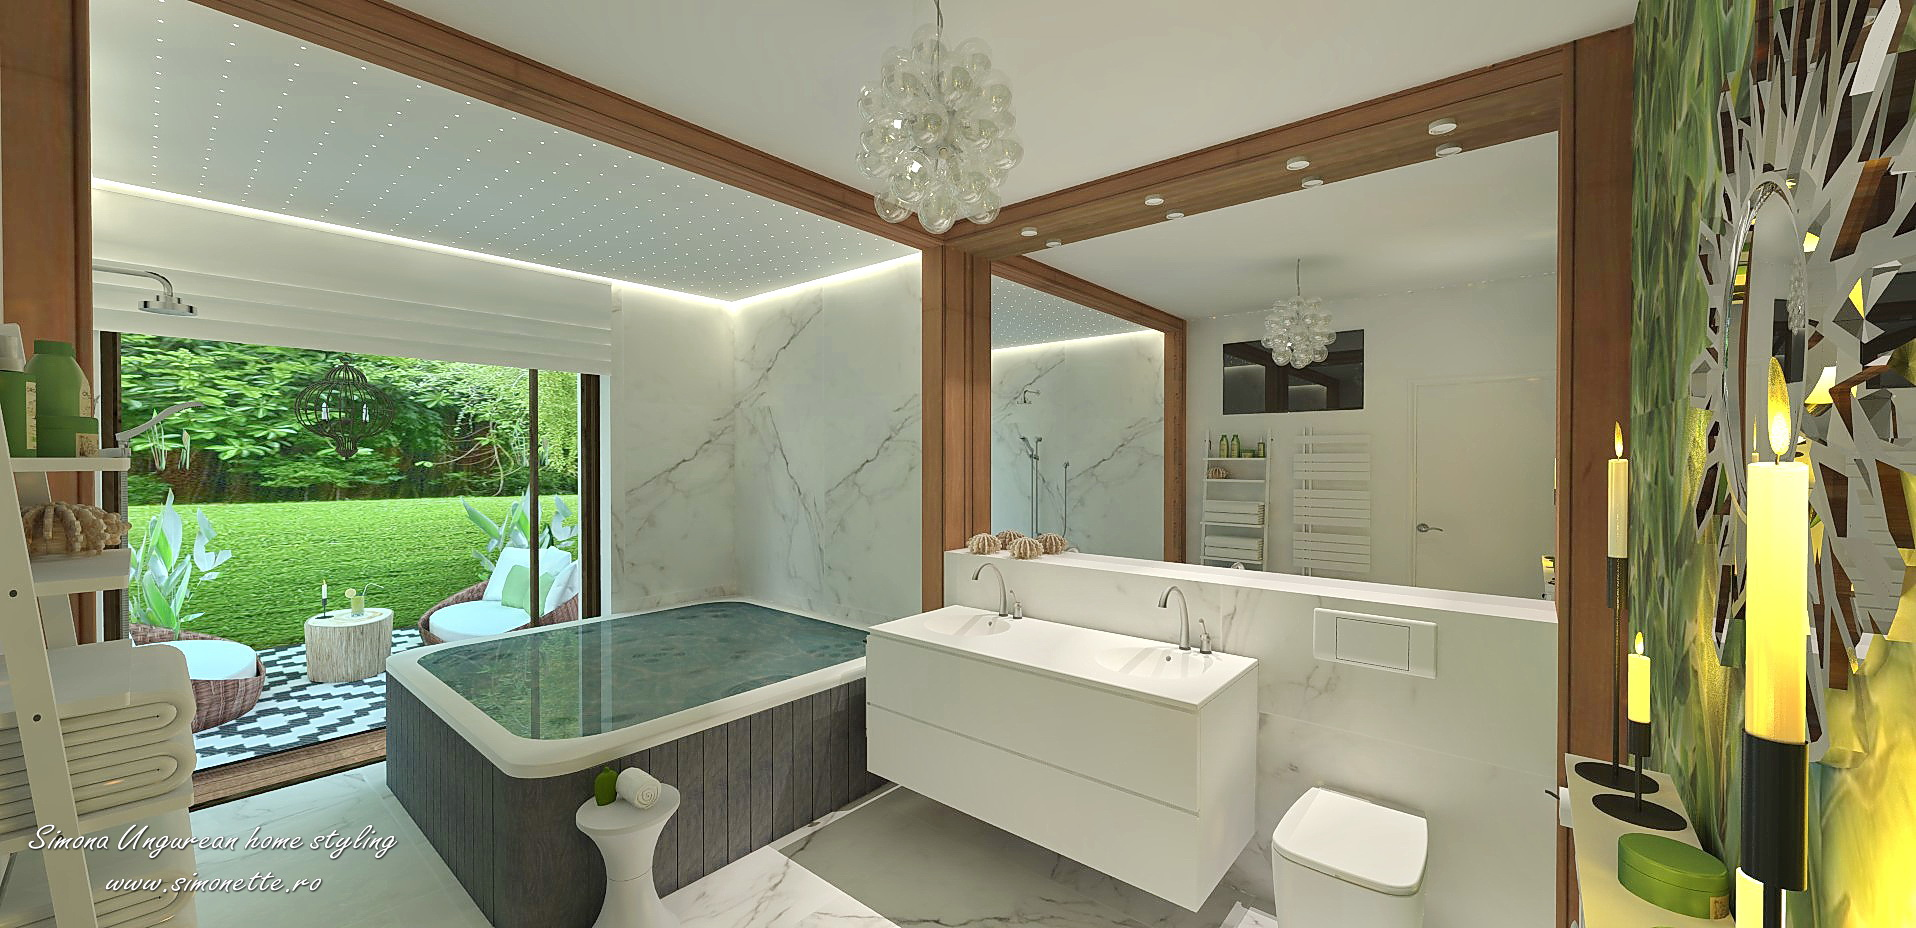 simona-ungurean-homestyling-design-interior-baie-marble-bathroom